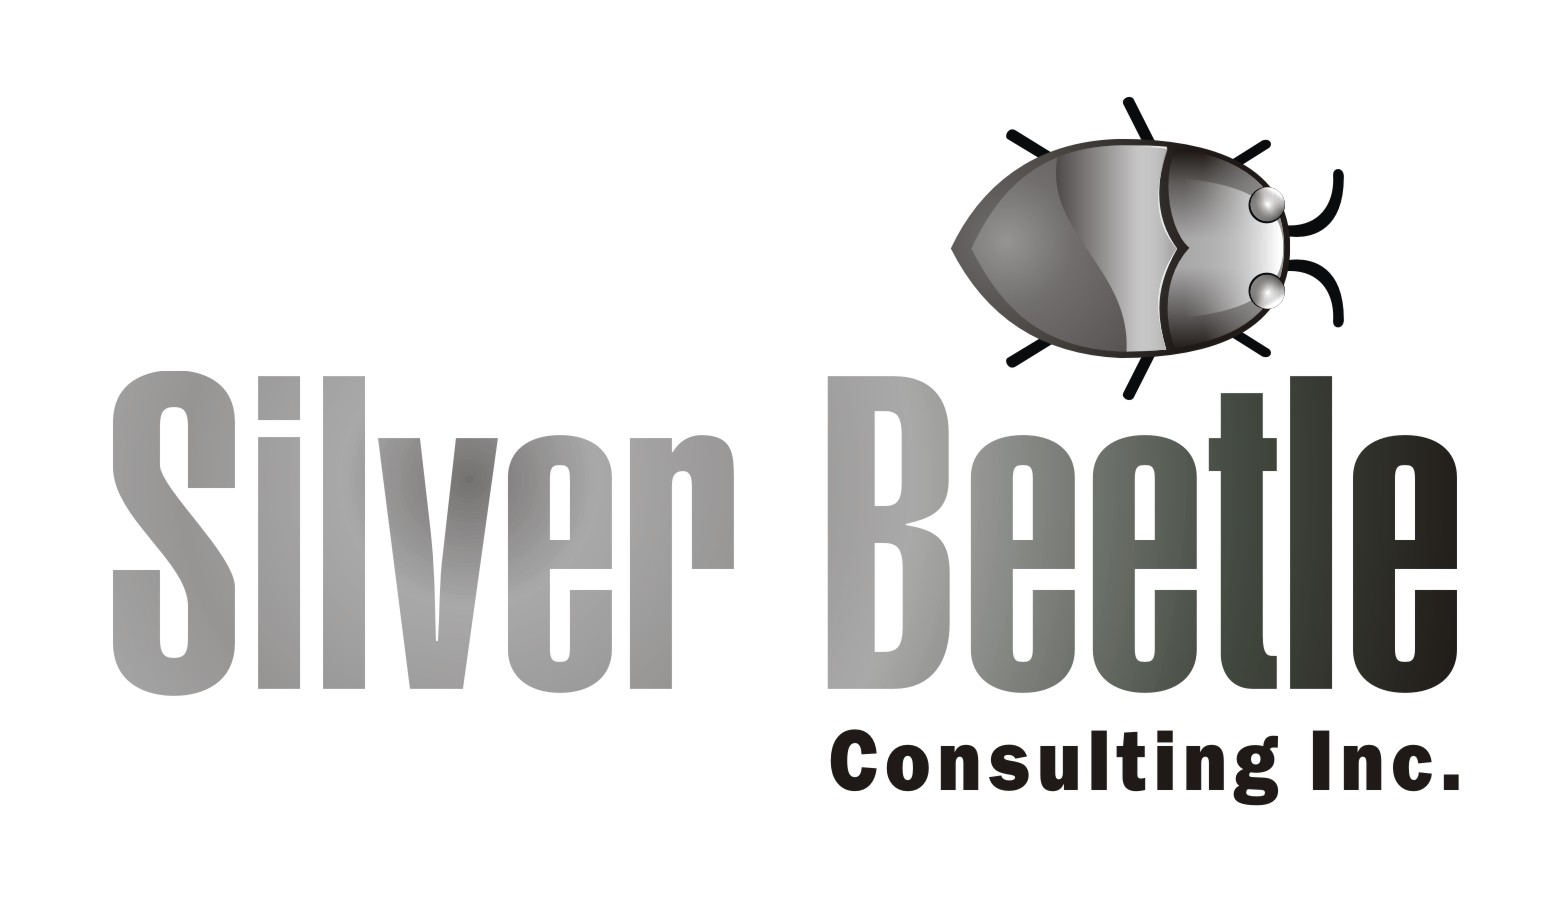 Logo Design by Private User - Entry No. 16 in the Logo Design Contest Silver Beetle Consulting Inc. Logo Design.